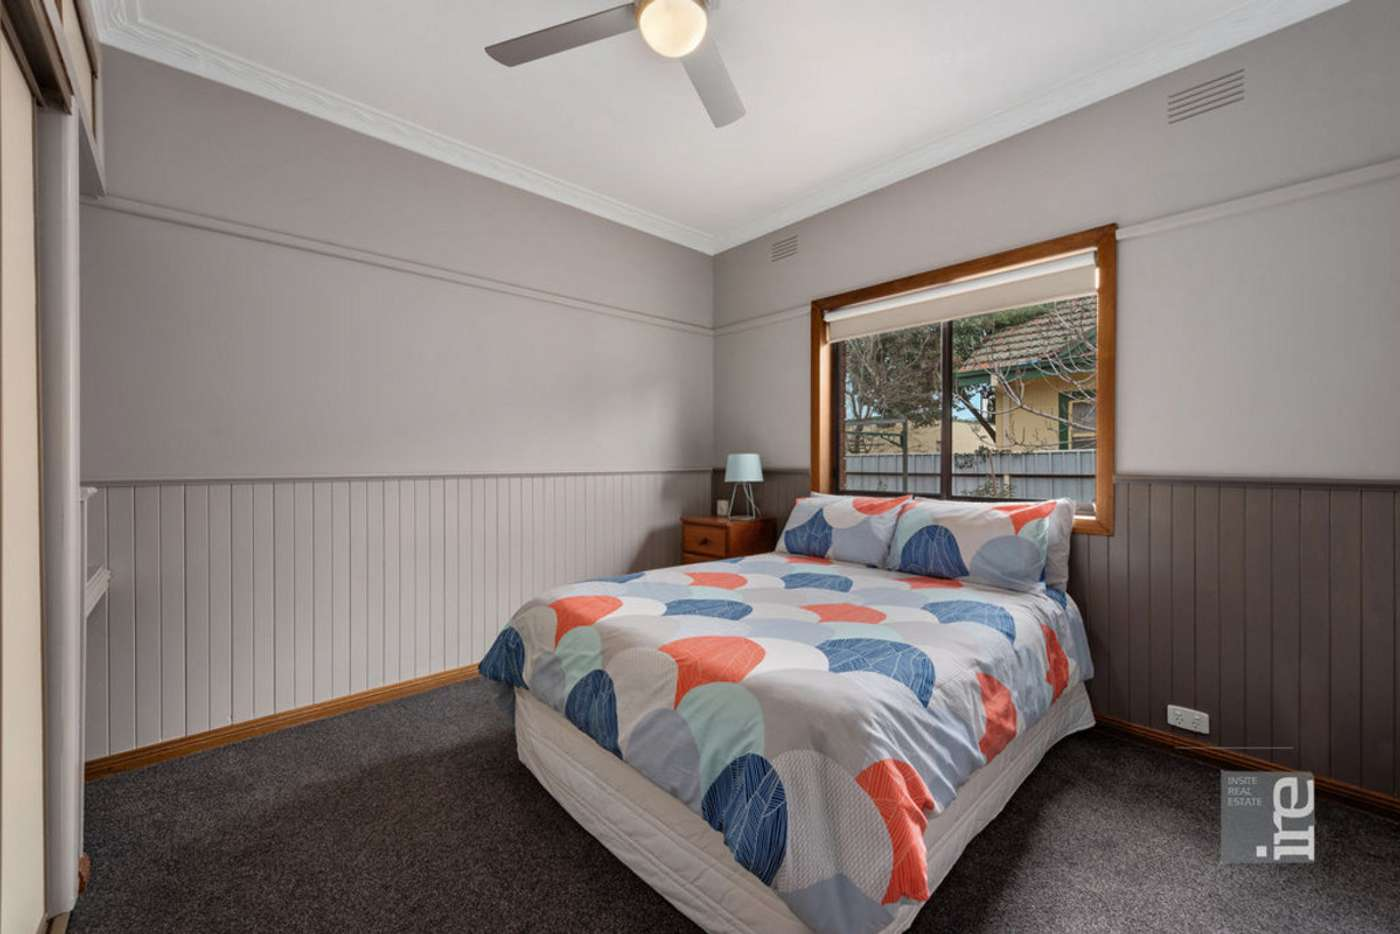 Seventh view of Homely house listing, 38 Phillipson Street, Wangaratta VIC 3677